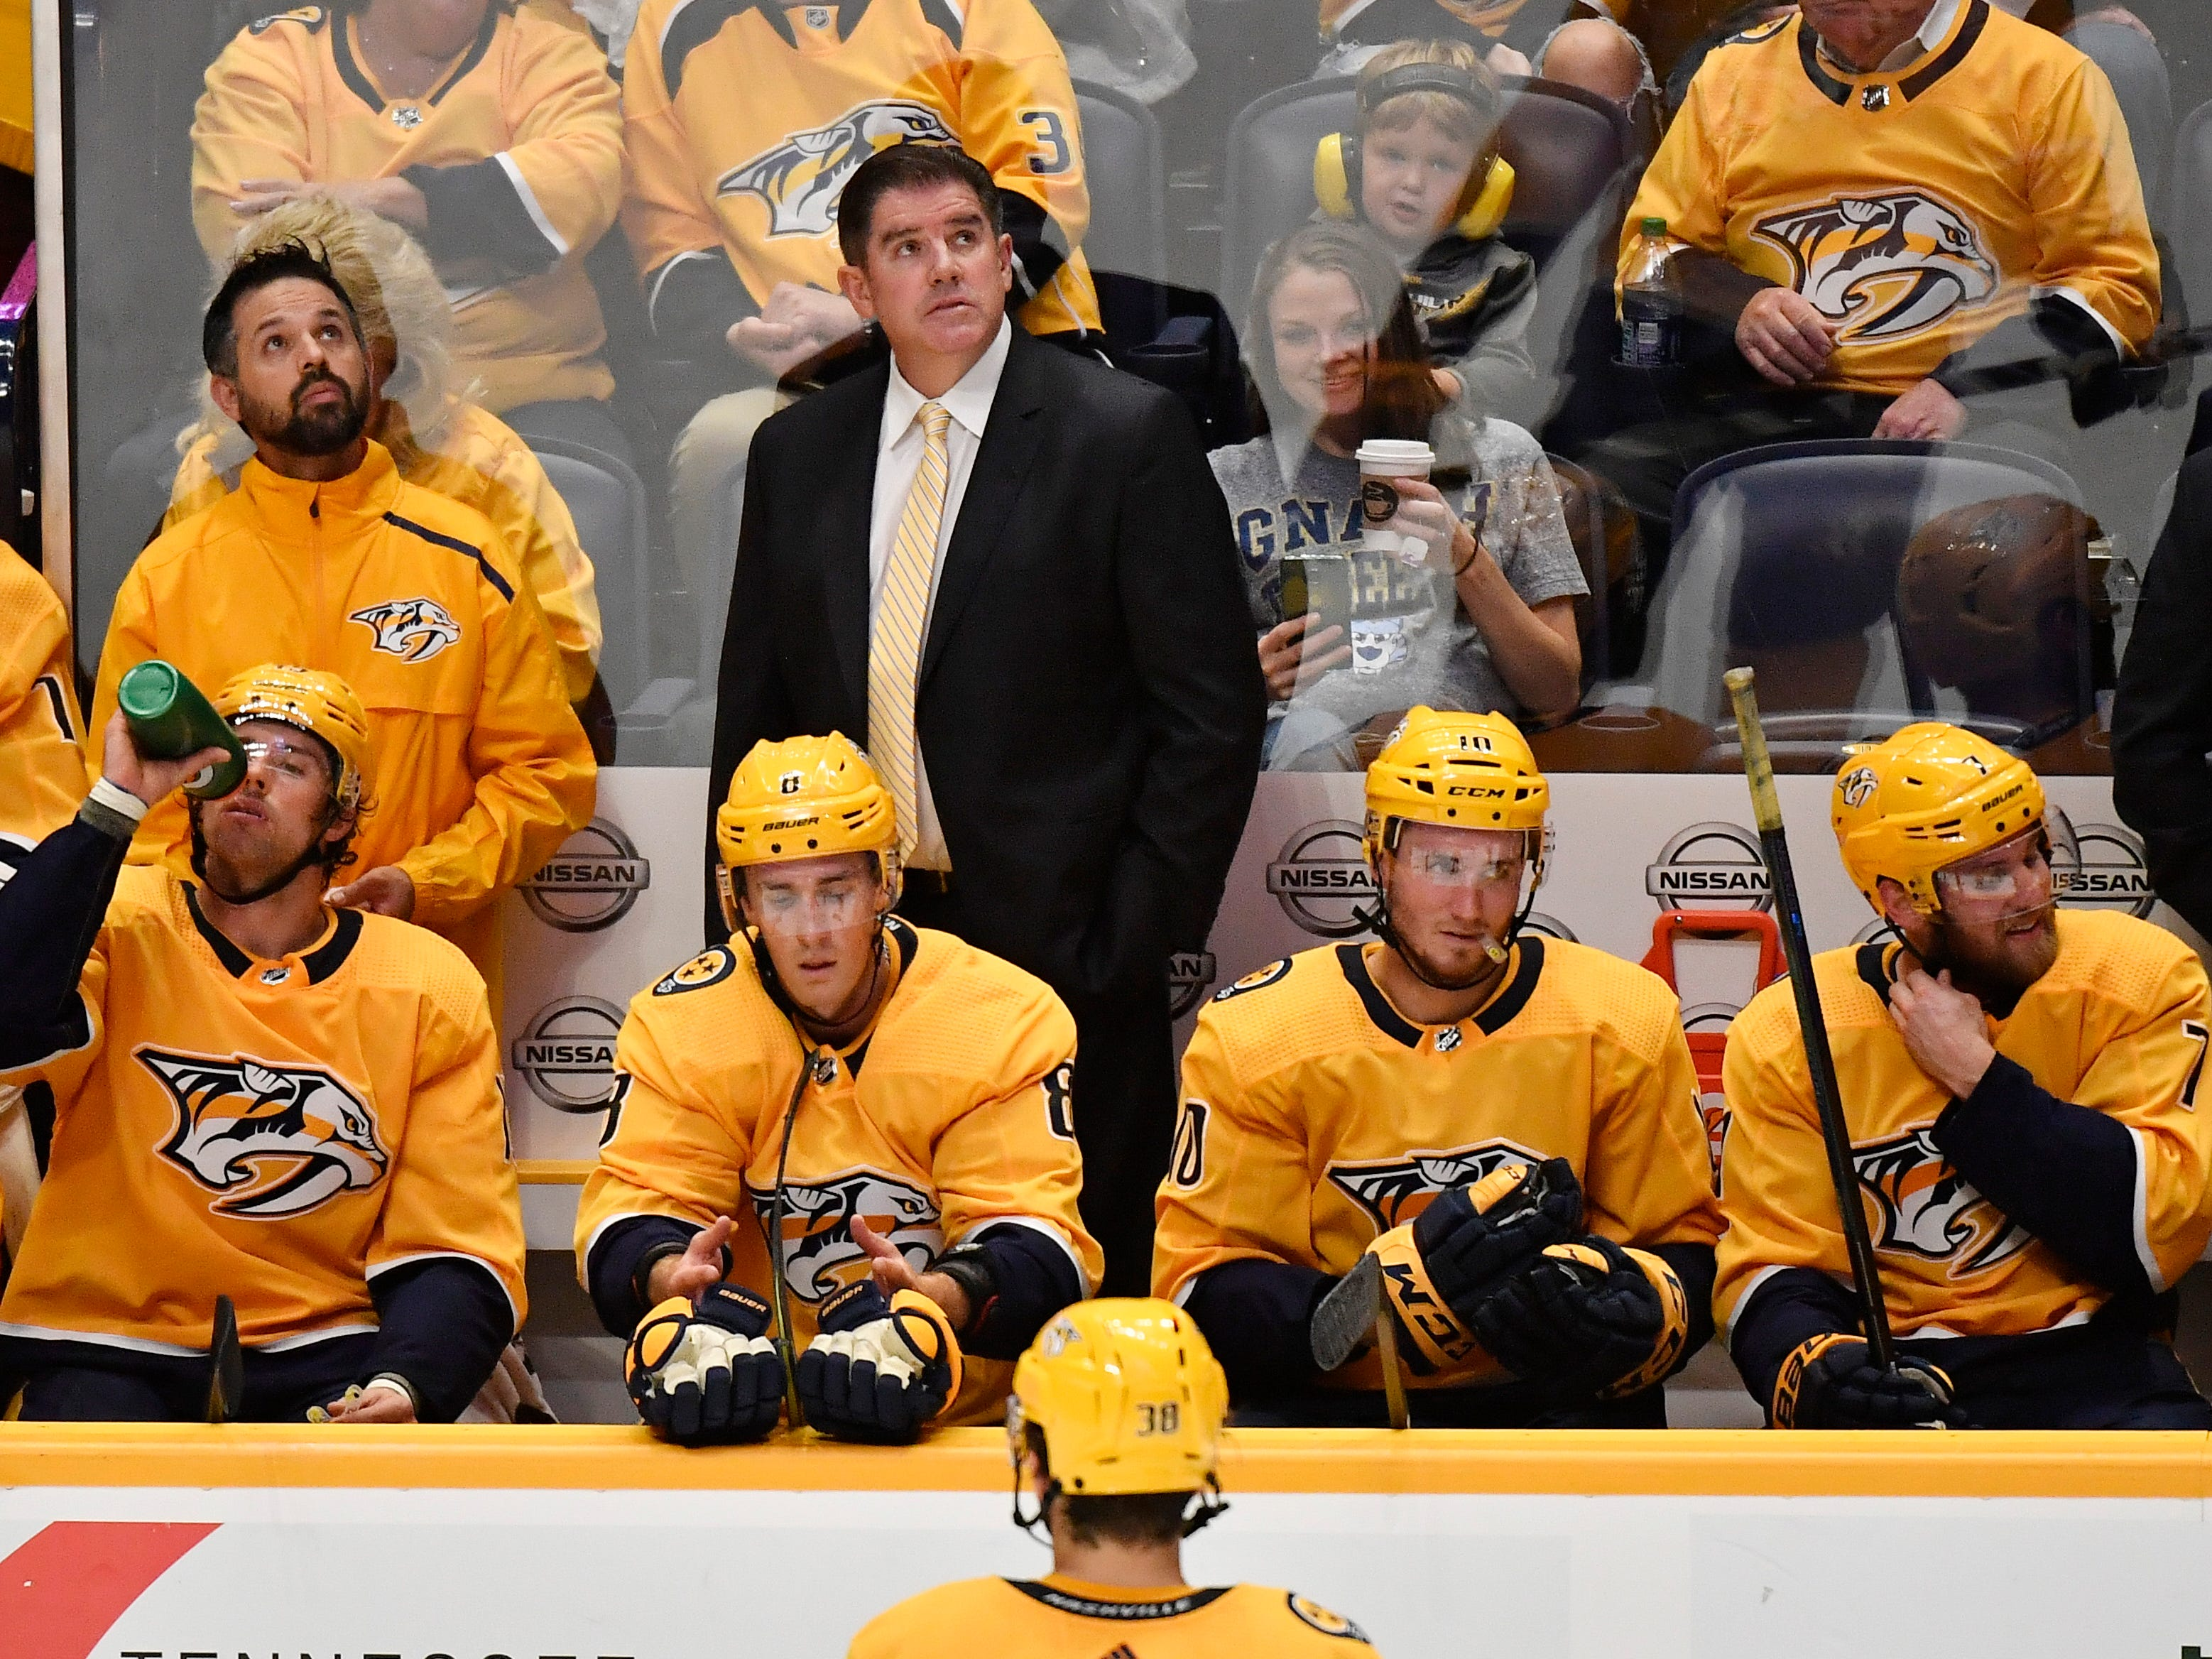 Nashville Predators head coach Peter Laviolette and the players react to being down 2-0 in the second period to the Flames in the home opener at Bridgestone Arena in Nashville, Tenn., Tuesday, Oct. 9, 2018.